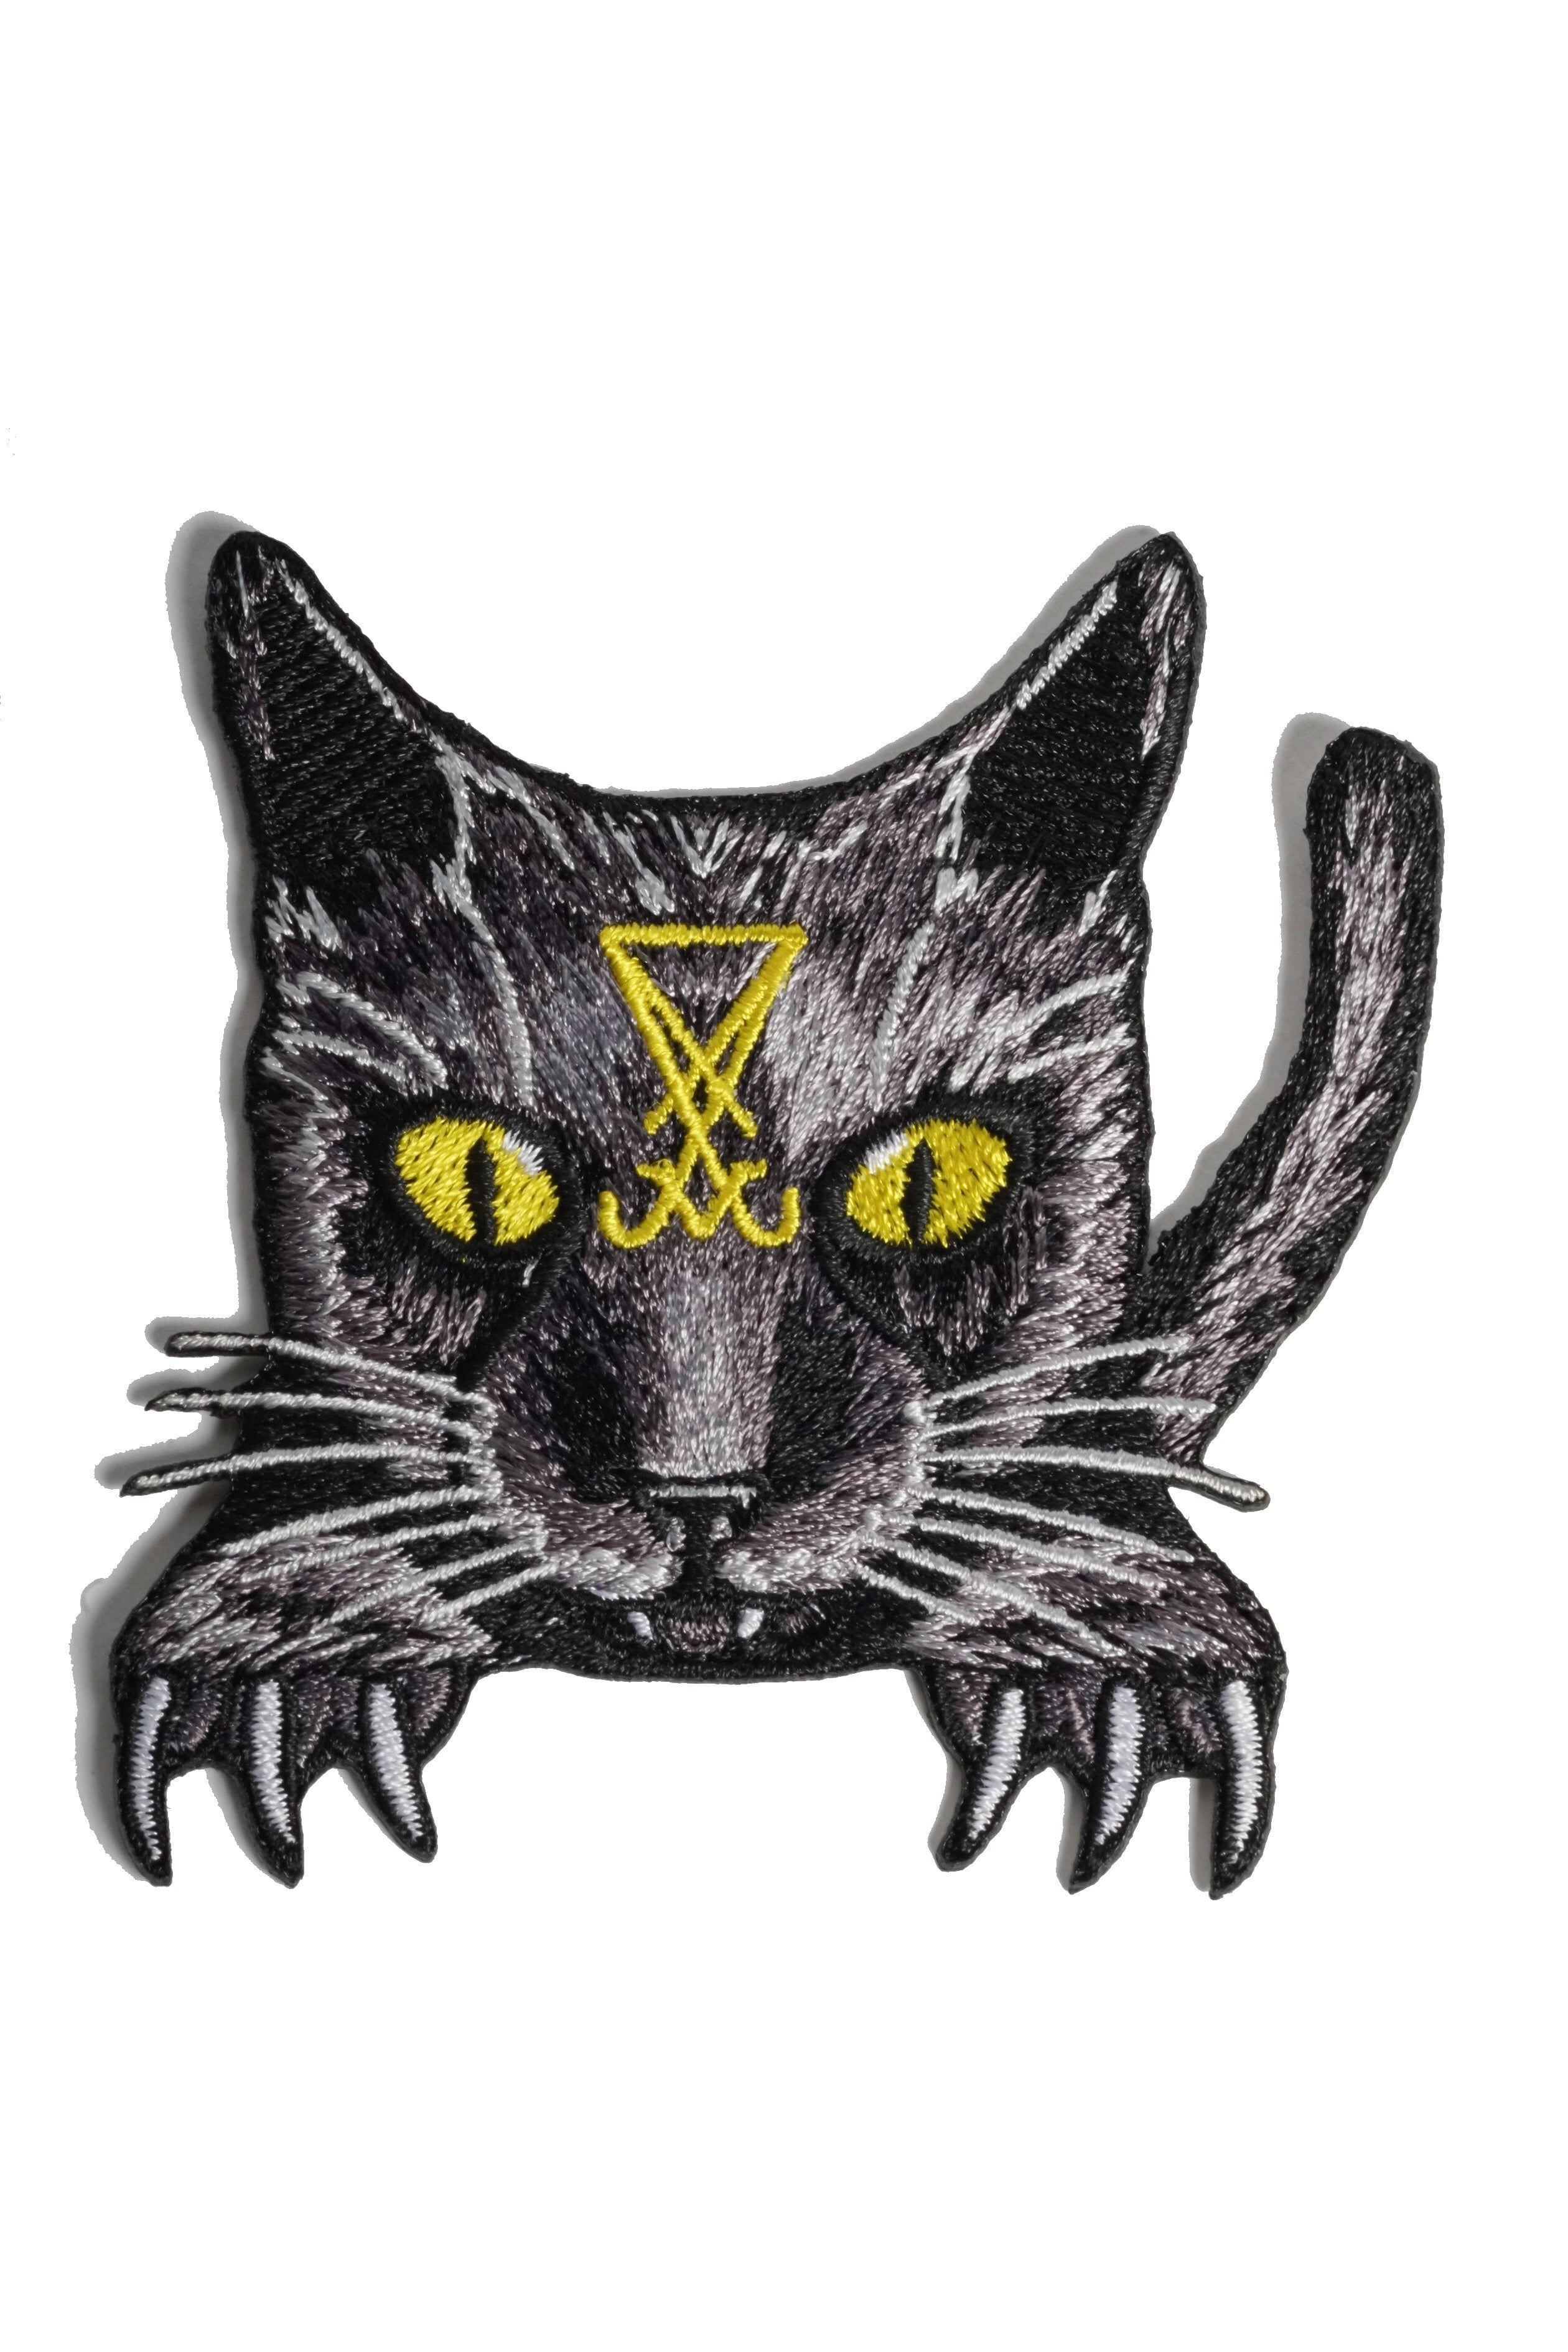 Lucifer The Cat - Embroidered Patch